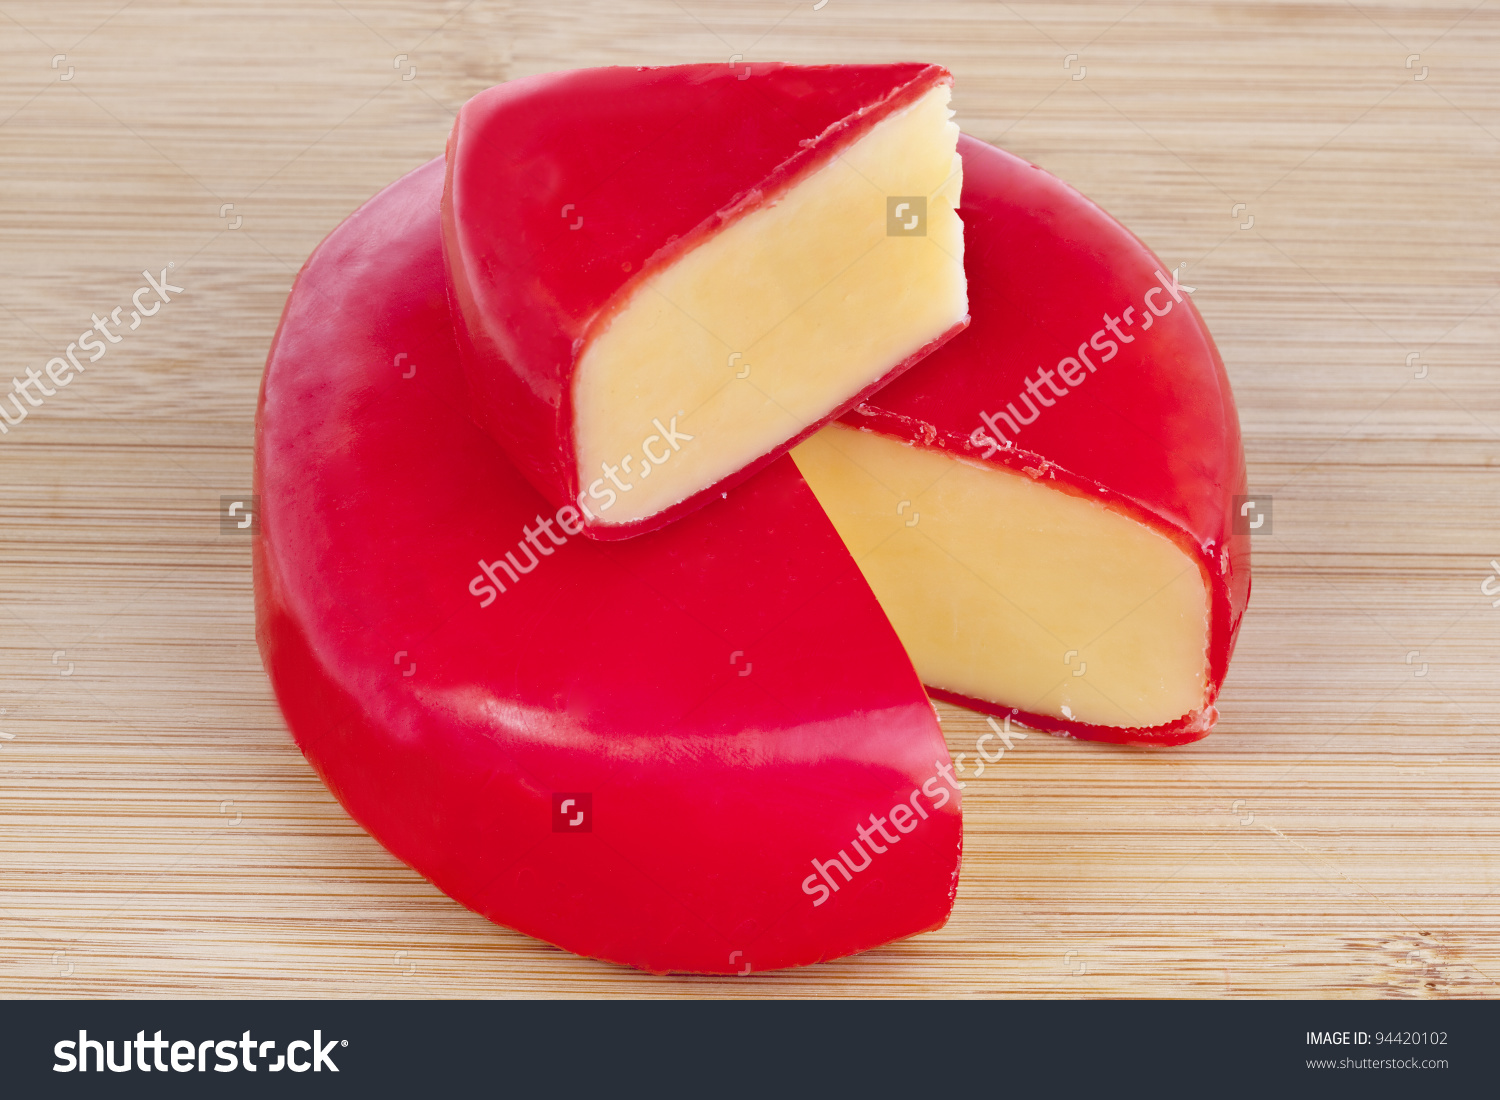 Circular Wheel Gouda Cheese Wedge Cut Stock Photo 94420102.